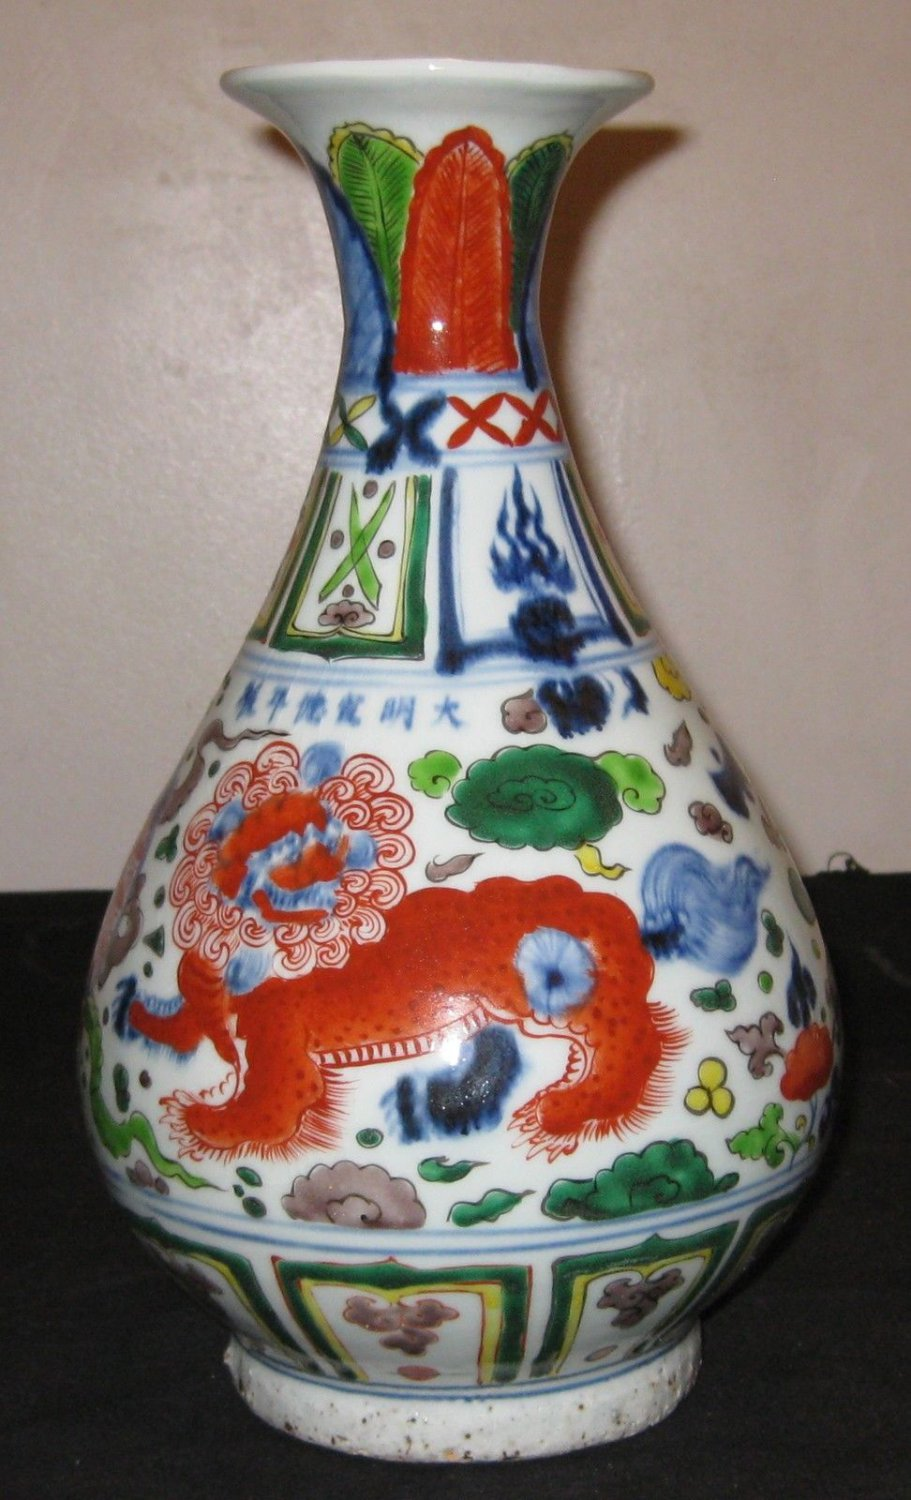 Antique Chinese Porcelain Dragons Vase 18th Century Ming